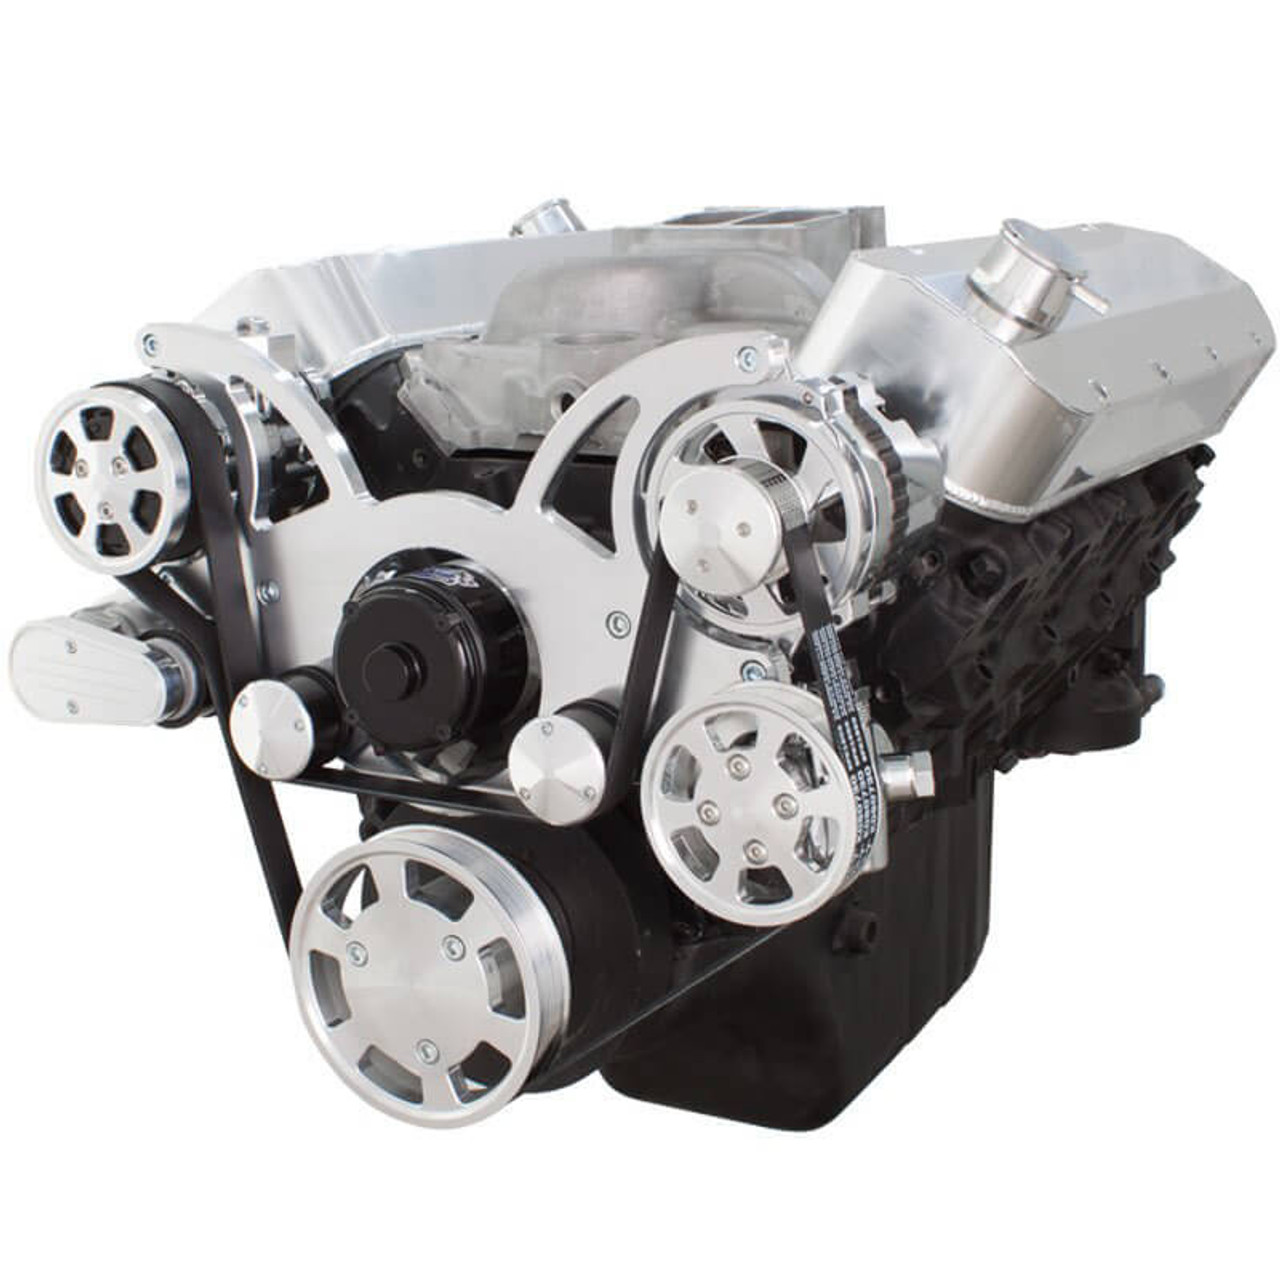 Serpentine System for Big Block Chevy - AC, Power Steering & Alternator  with Electric Water Pump - All Inclusive